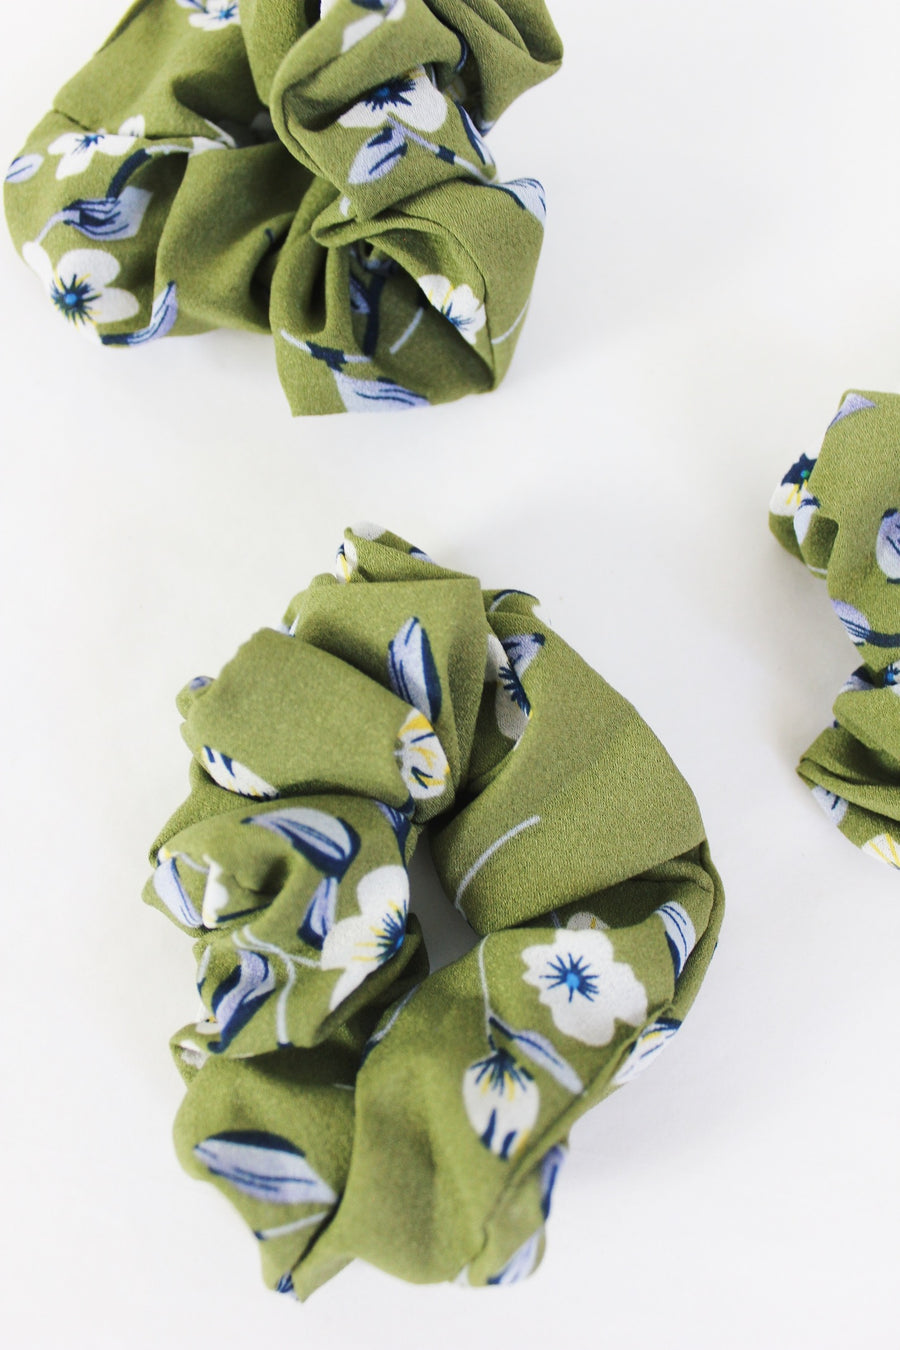 khaki green hair scrunchie